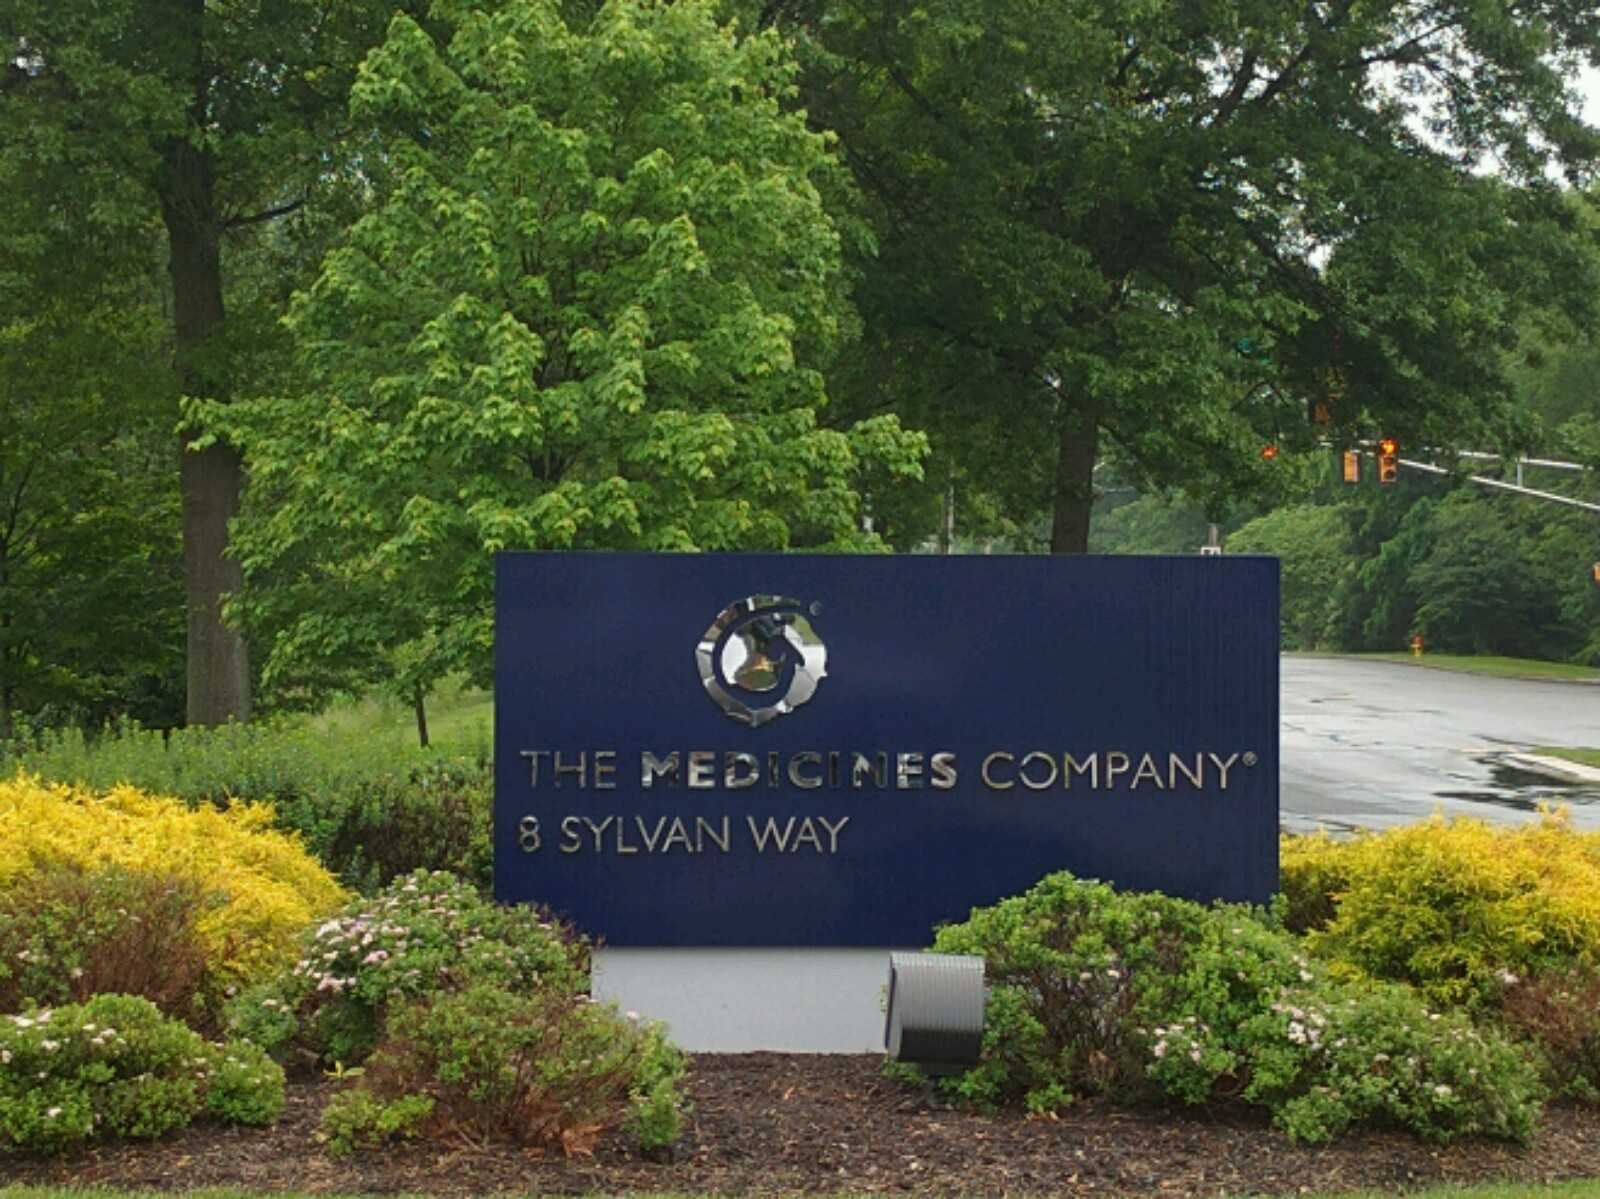 Entrance to The Medicines Company's corporate headquarters in Parsippany, New Jersey.